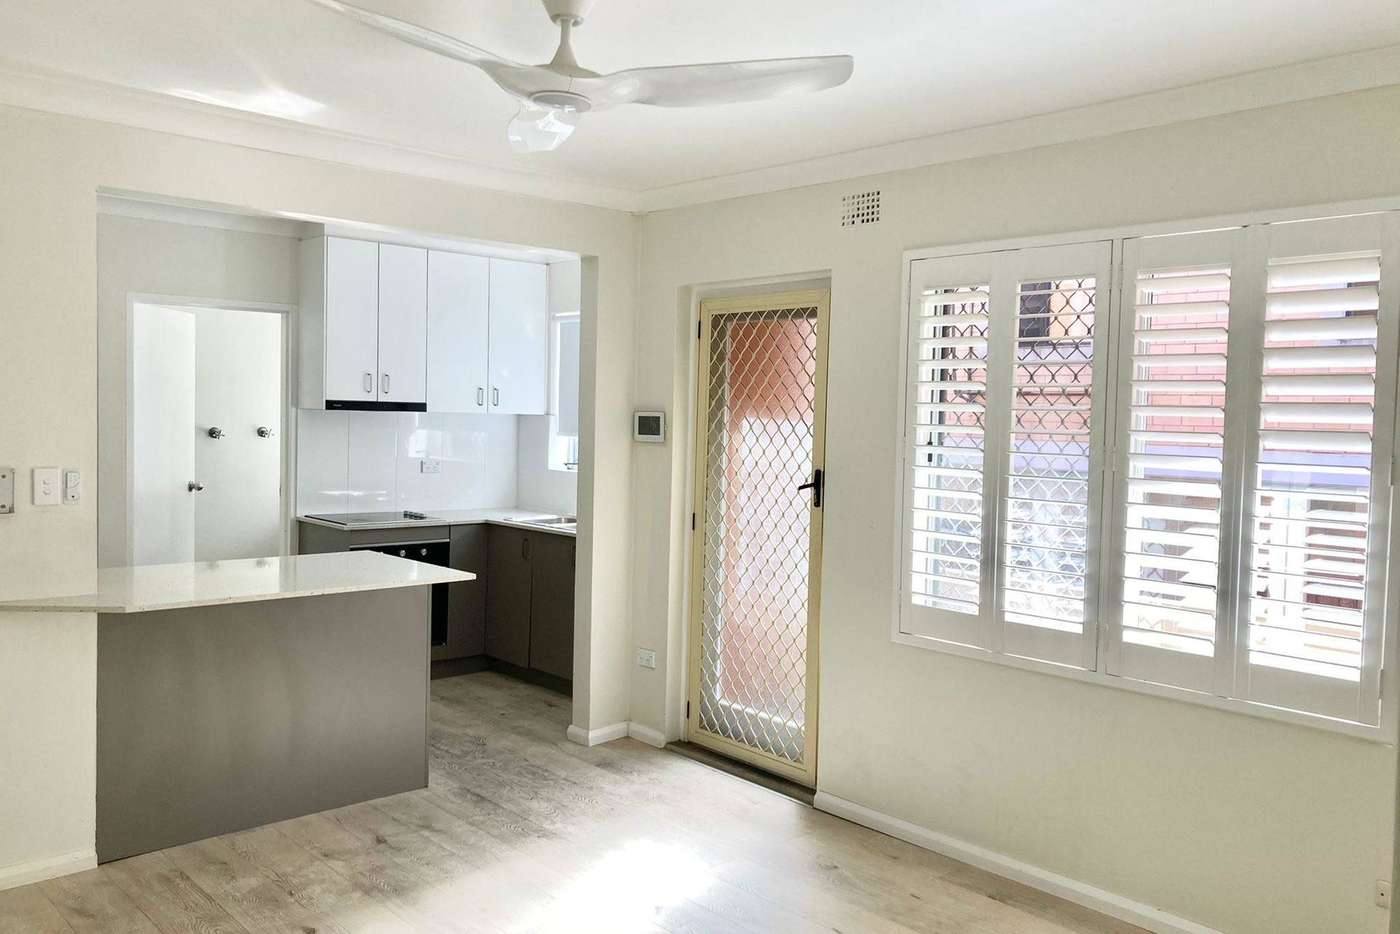 Main view of Homely apartment listing, 1/31 Gibbons Street, Auburn NSW 2144